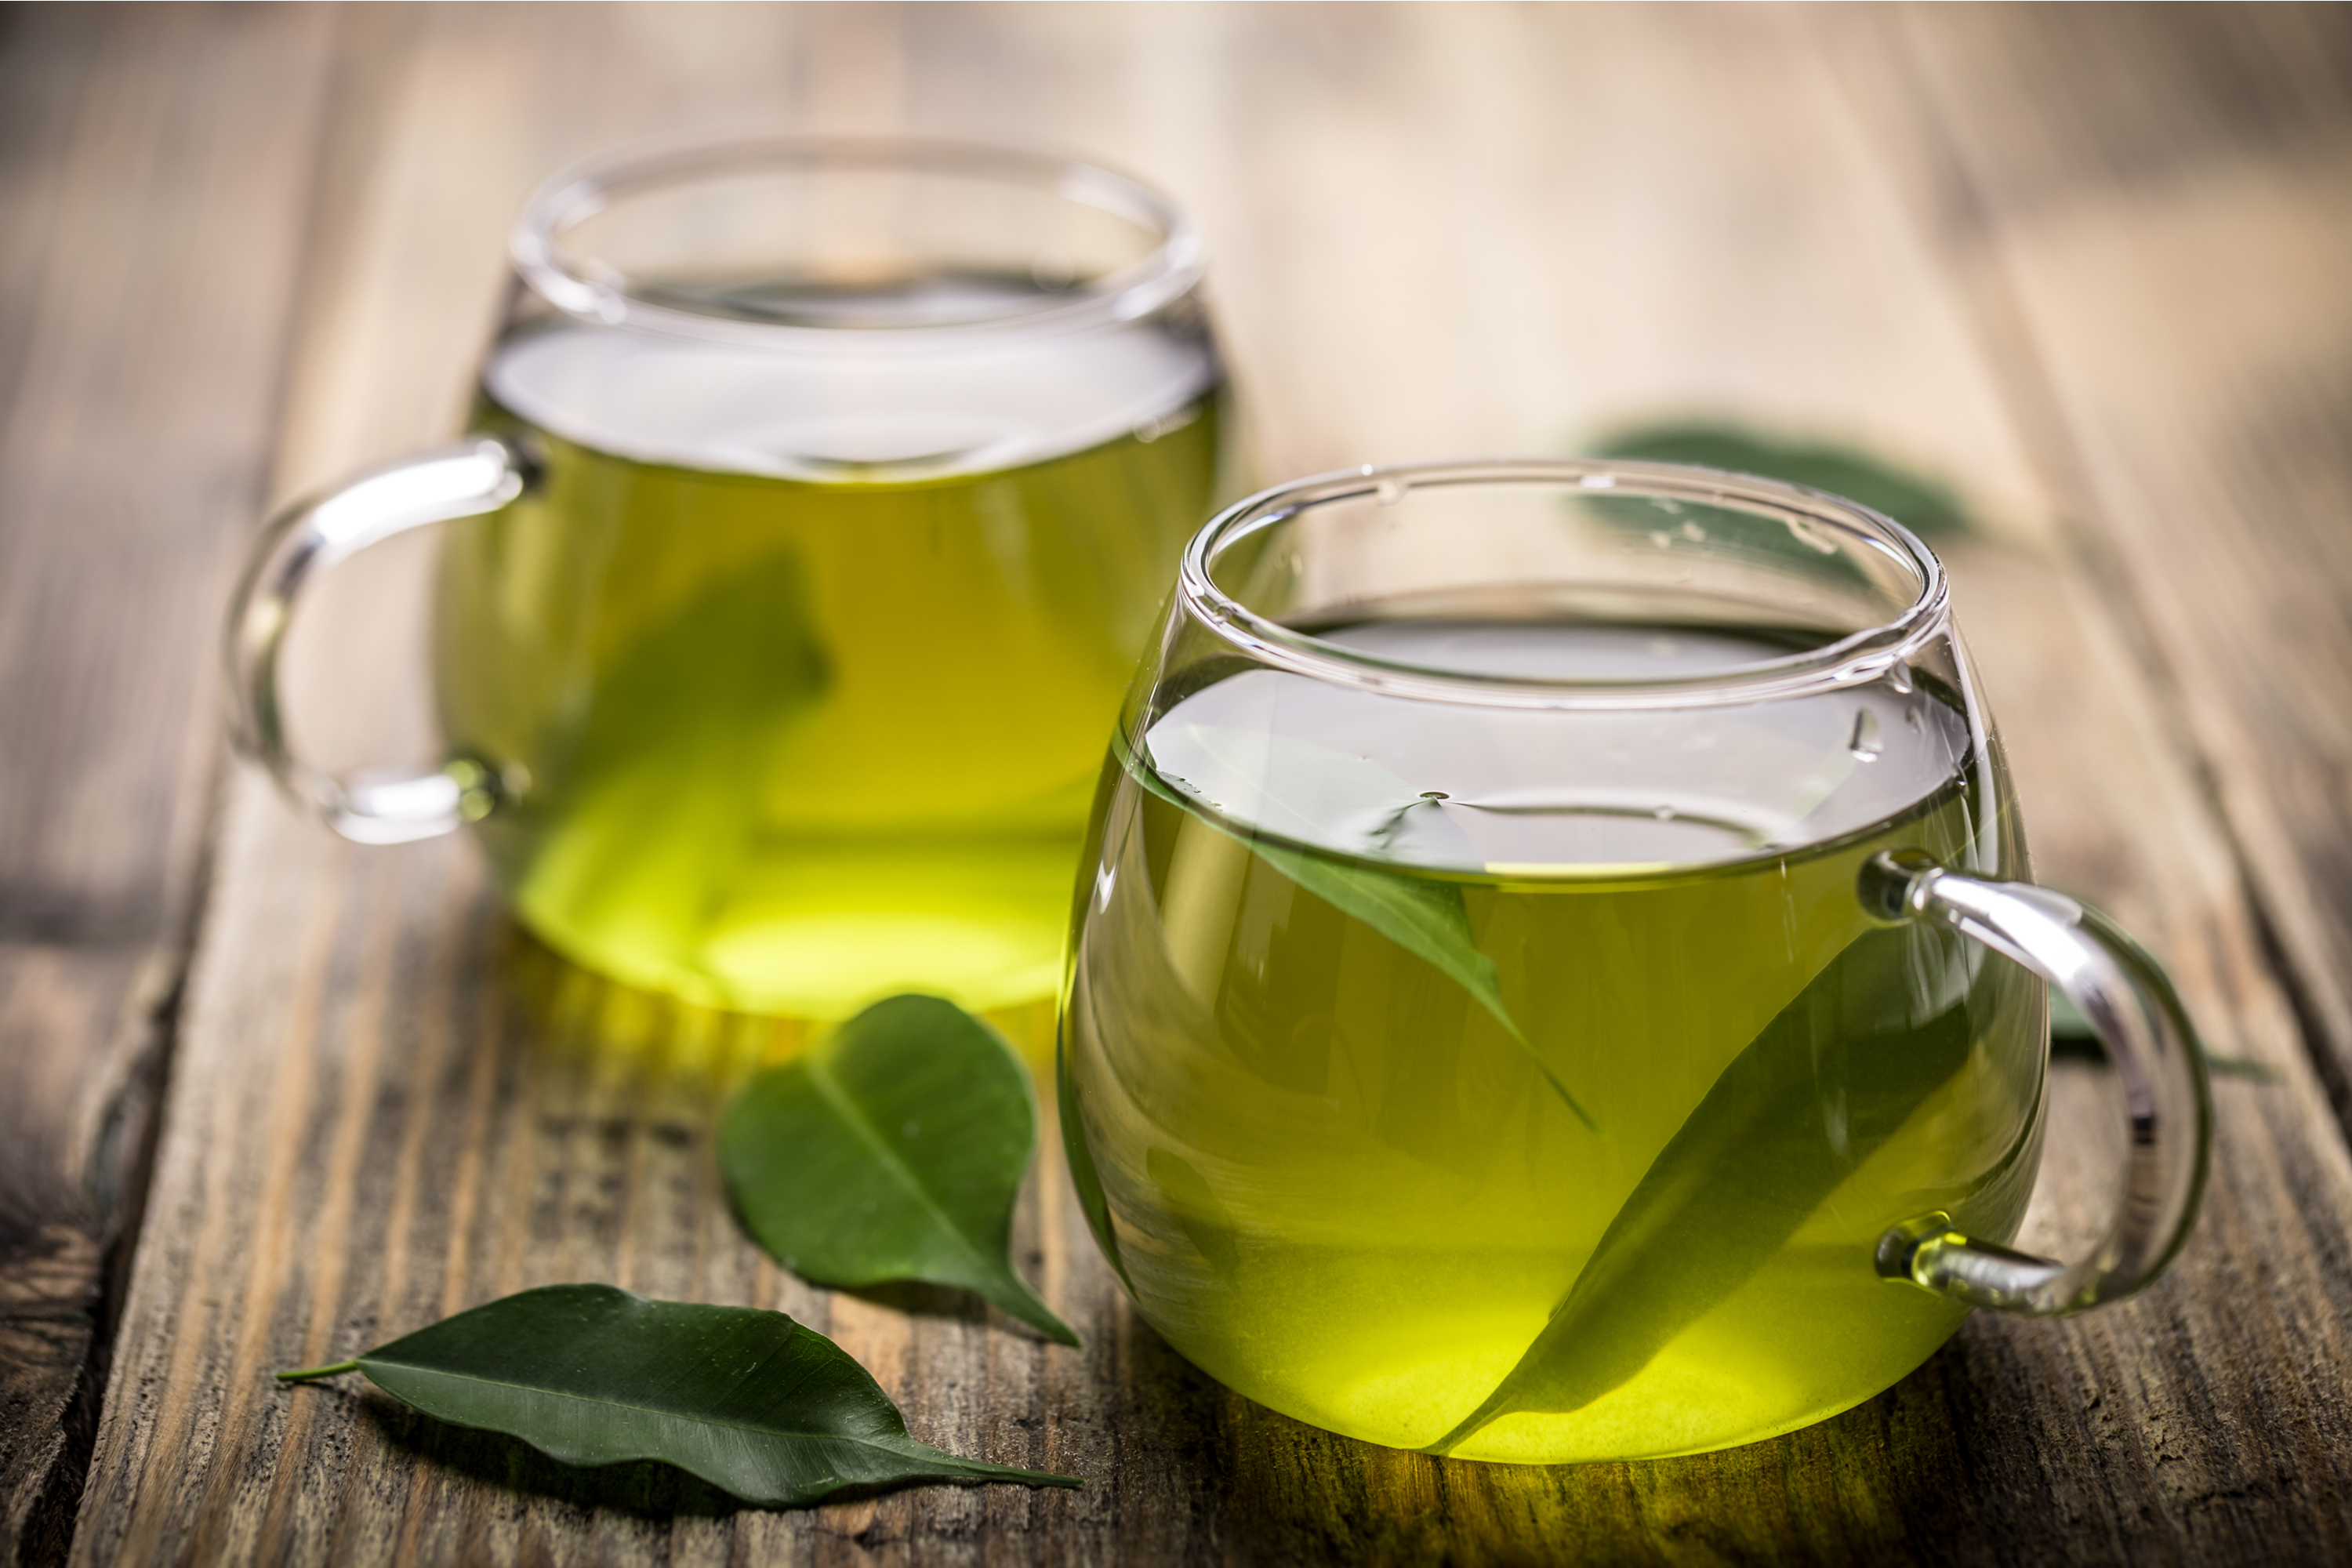 Are you a green tea lover? You should be. There are so many health benefits from drinking it. These green tea recipes will have you falling in love with them.